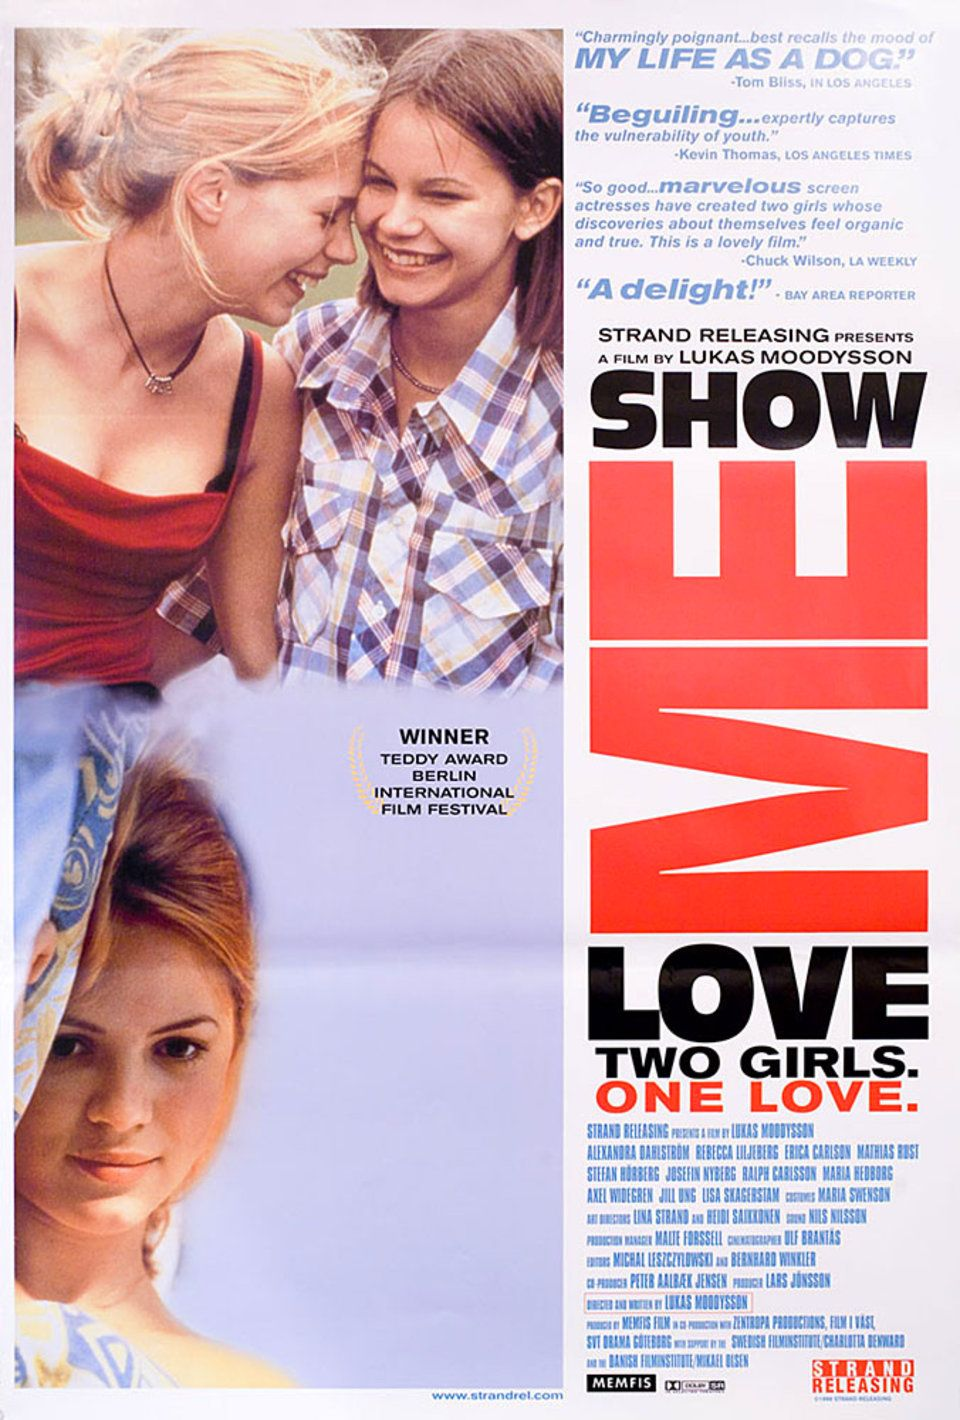 Show Me Love 1998 U S One Sheet Poster Posteritati Movie Poster Gallery New York Love Movie Movie Posters Good Movies